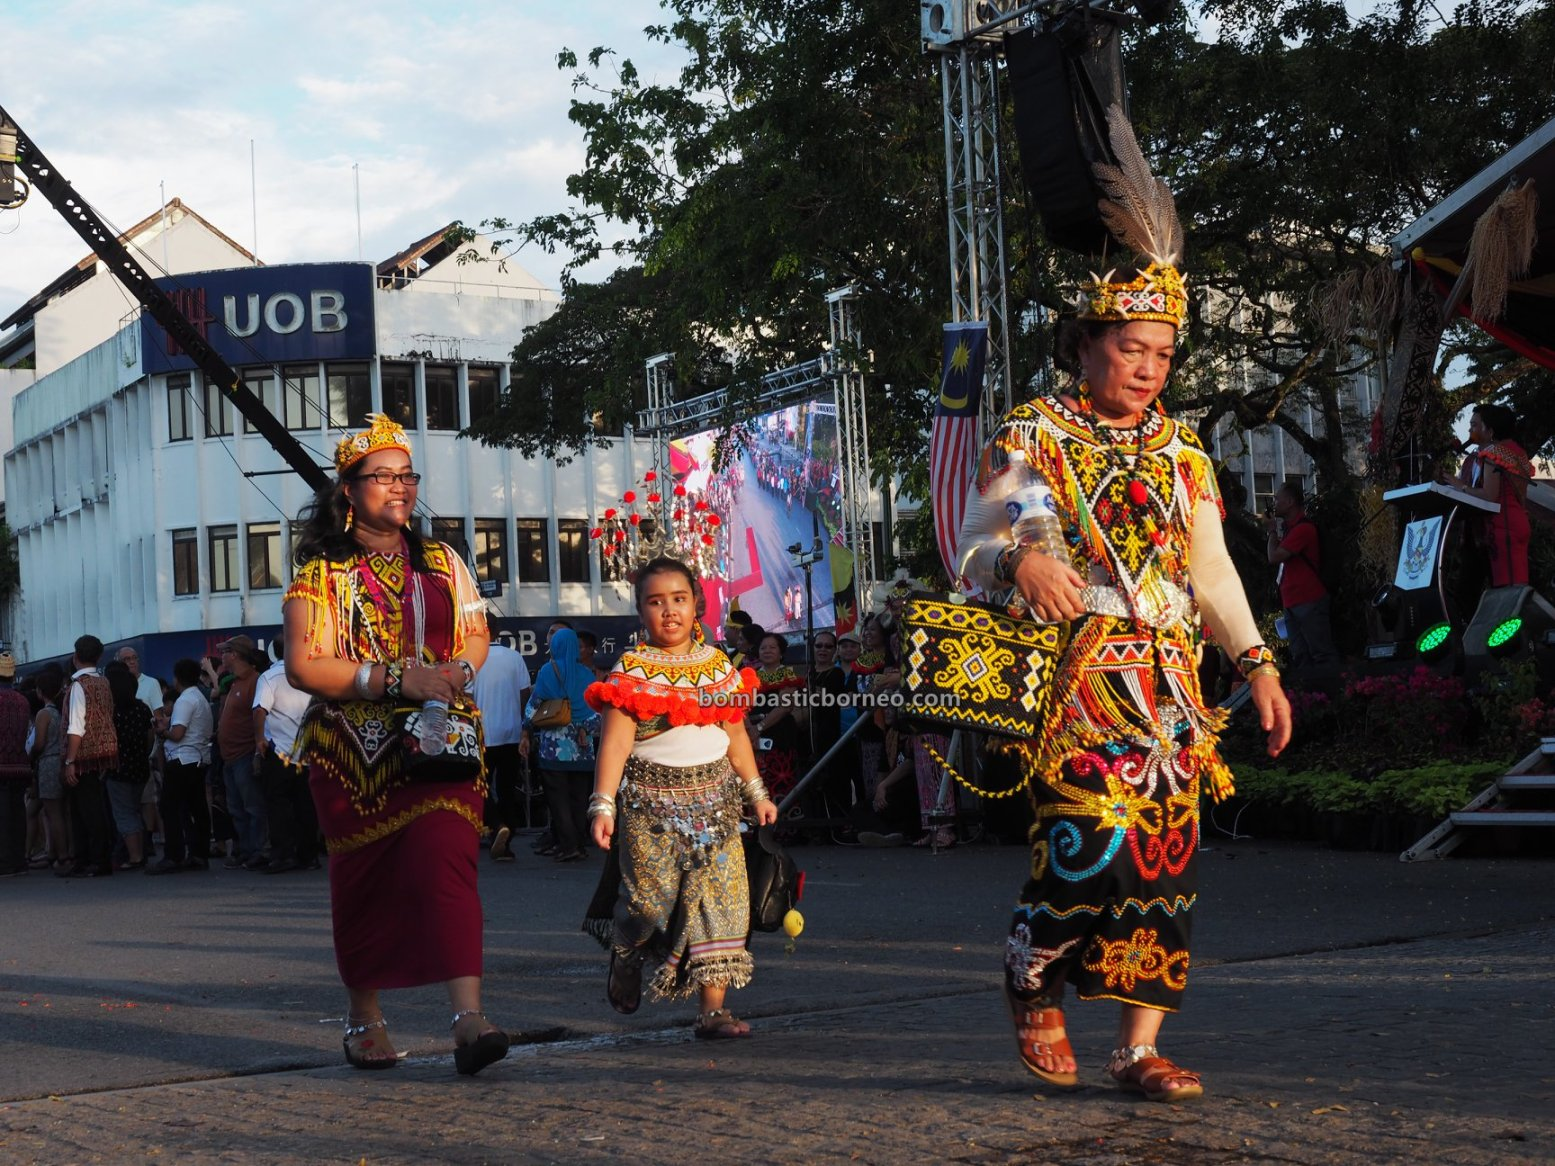 Gawai Dayak, Street Parade, paddy harvest festival, authentic, budaya, destination, Kuching Waterfront, indigenous, native, tourist attraction, Travel guide, Trans Border, 探索婆罗洲土著, 砂拉越肯雅族部落, 马来西亚原住民